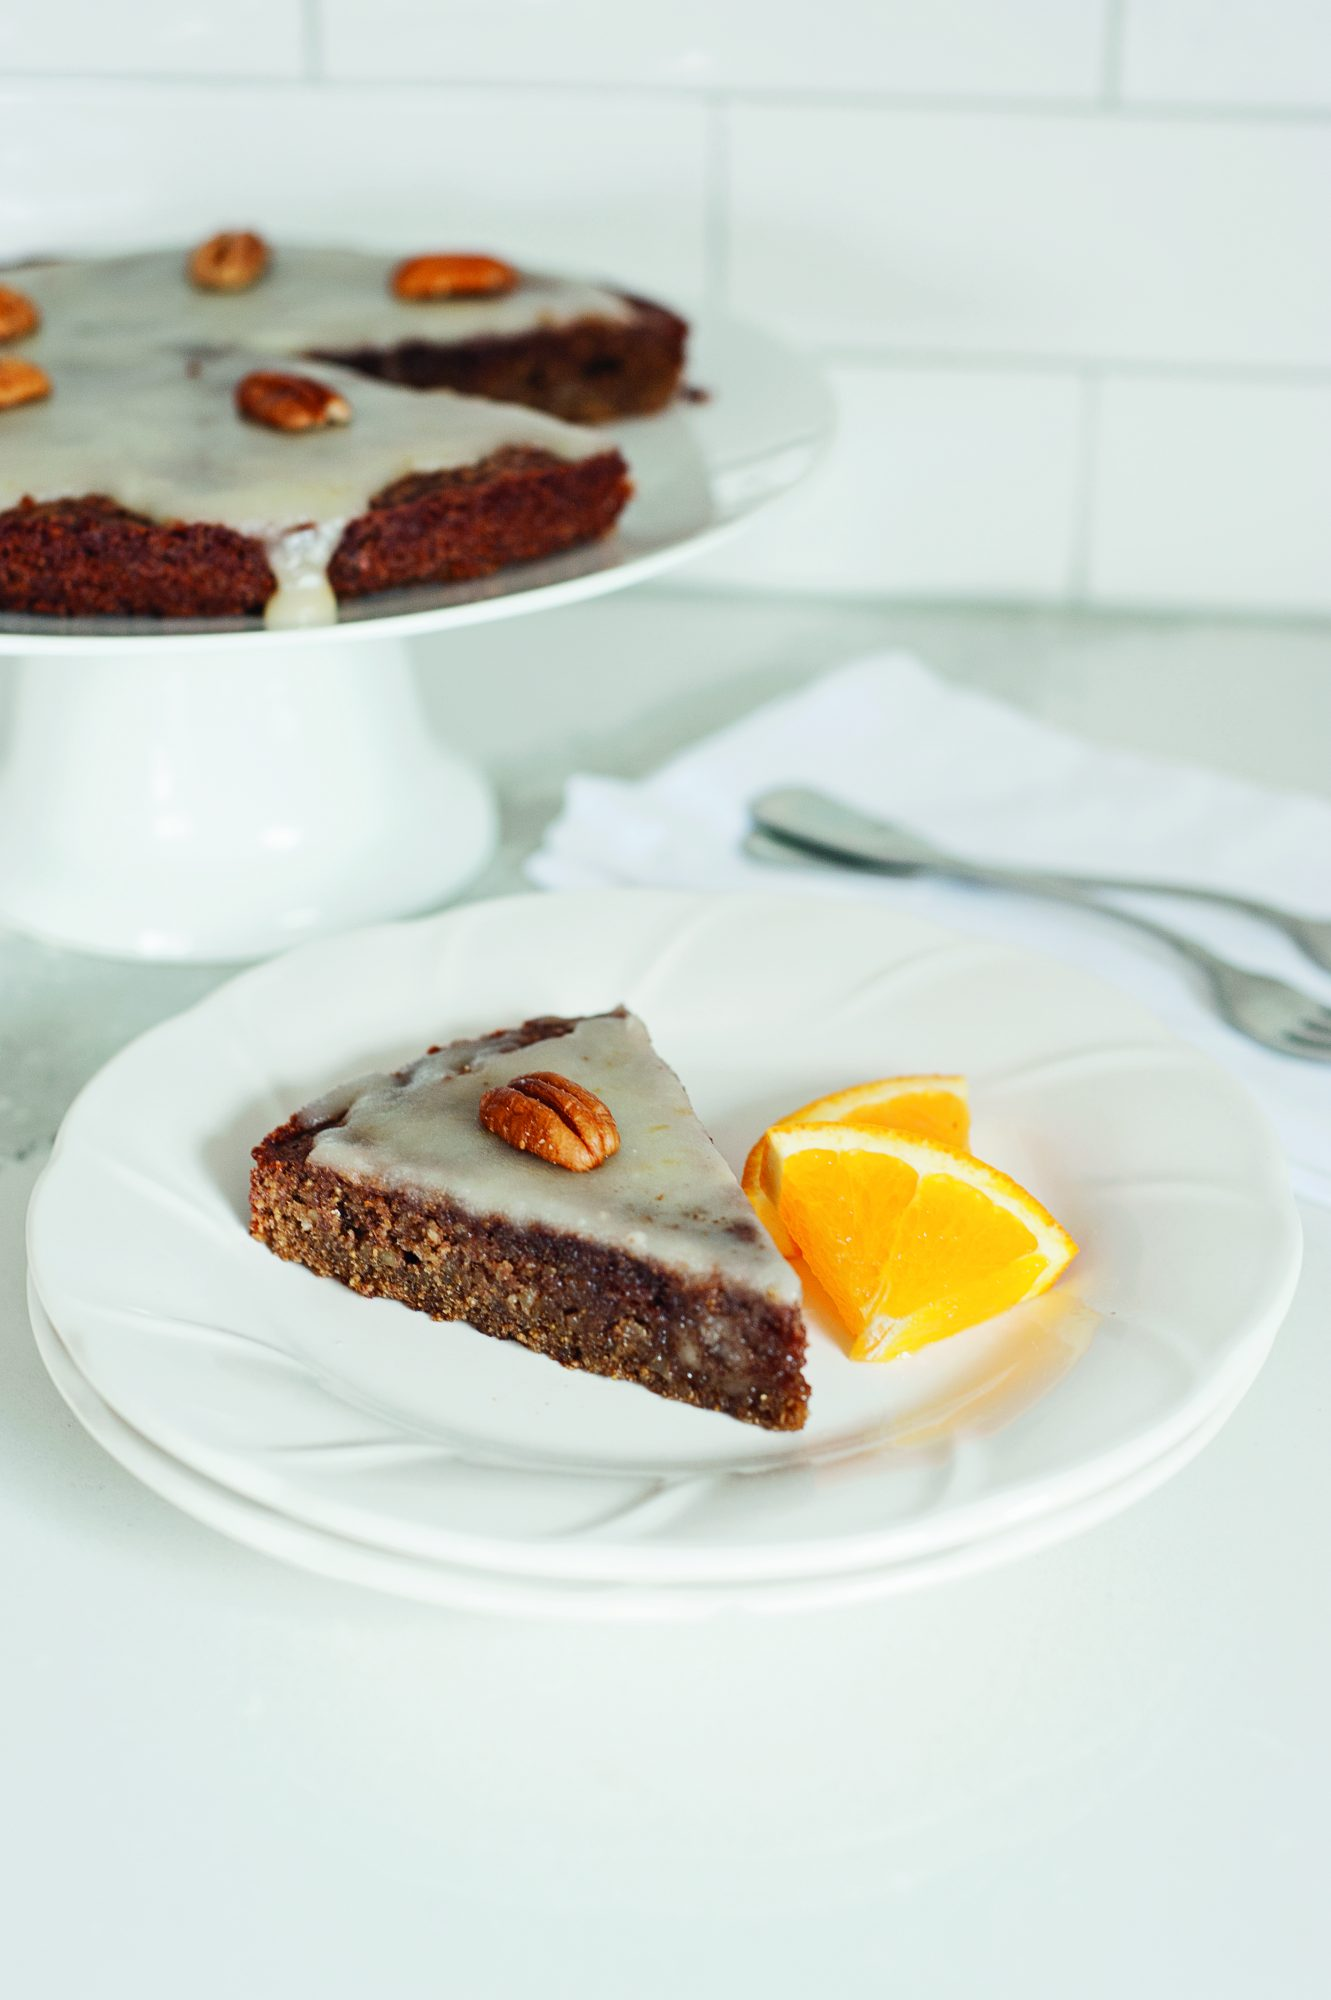 Low-FODMAP chocolate and orange cake